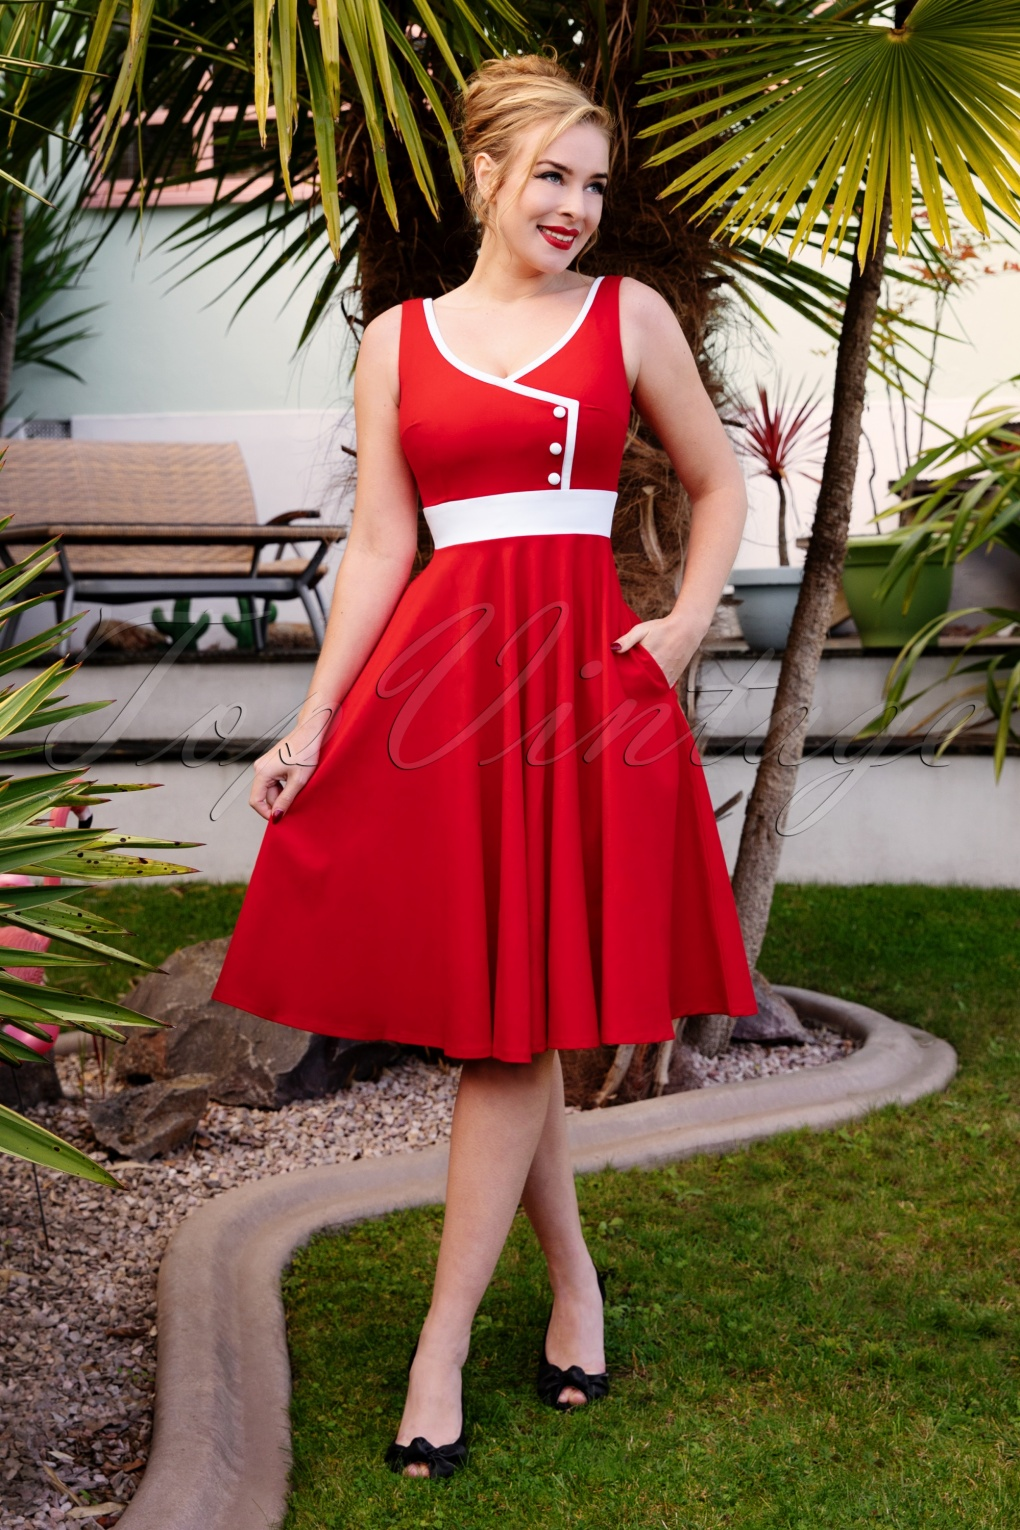 1950s Inspired Fashion: Recreate the Look 50s Willow Swing Dress in Lipstick Red £19.95 AT vintagedancer.com